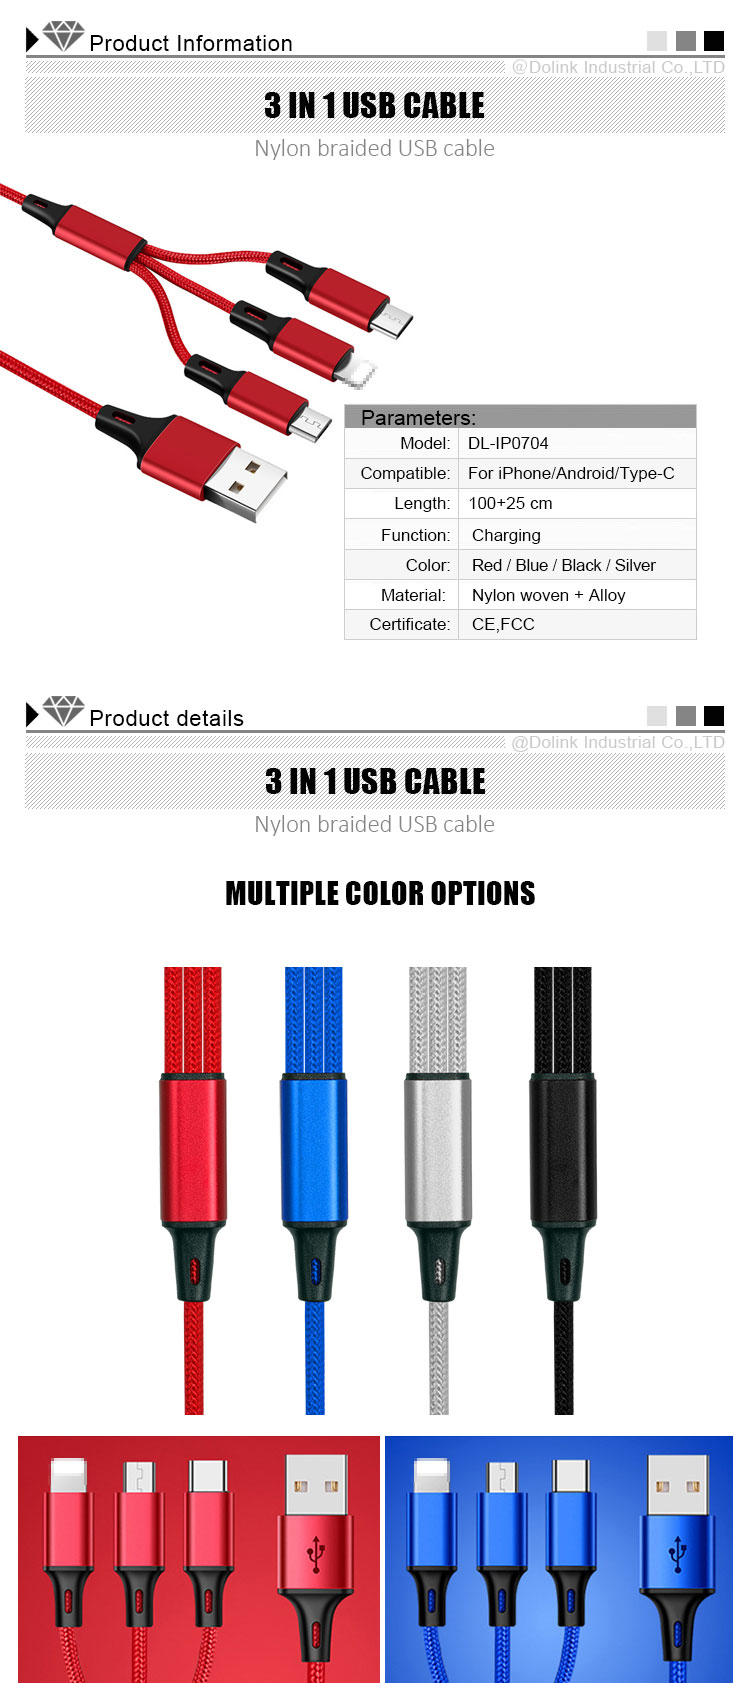 Wholesale Nylon Woven Micro Usb Cable,Mobile Phone Accessories Type-C Usb C Cable,Fast Charging 3 In 1 Usb Data Cable For iPhone